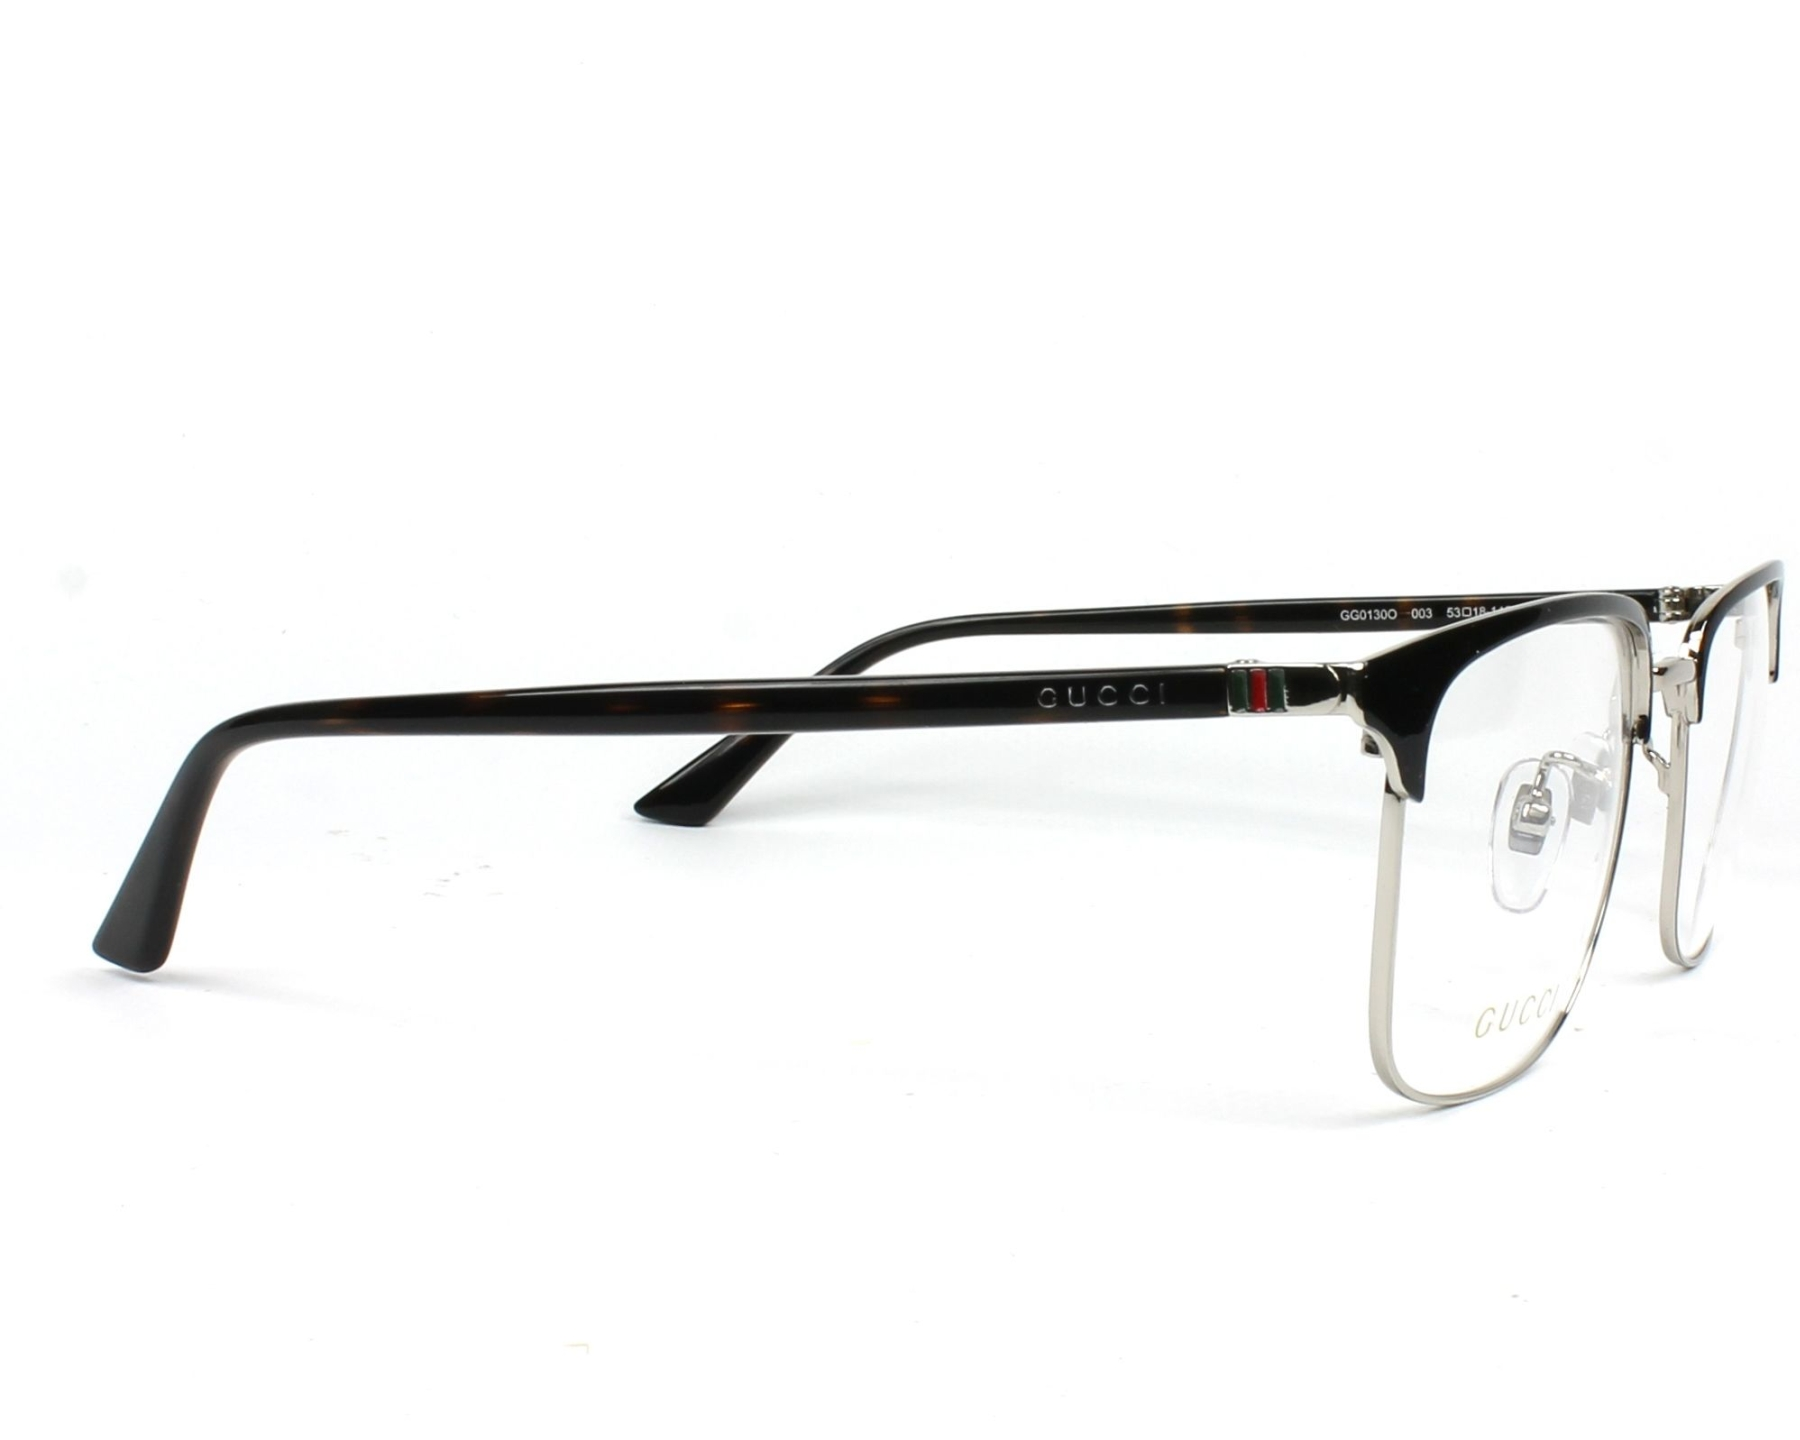 238407eb2c9c0 eyeglasses Gucci GG-01300 003 - Blue Silver side view